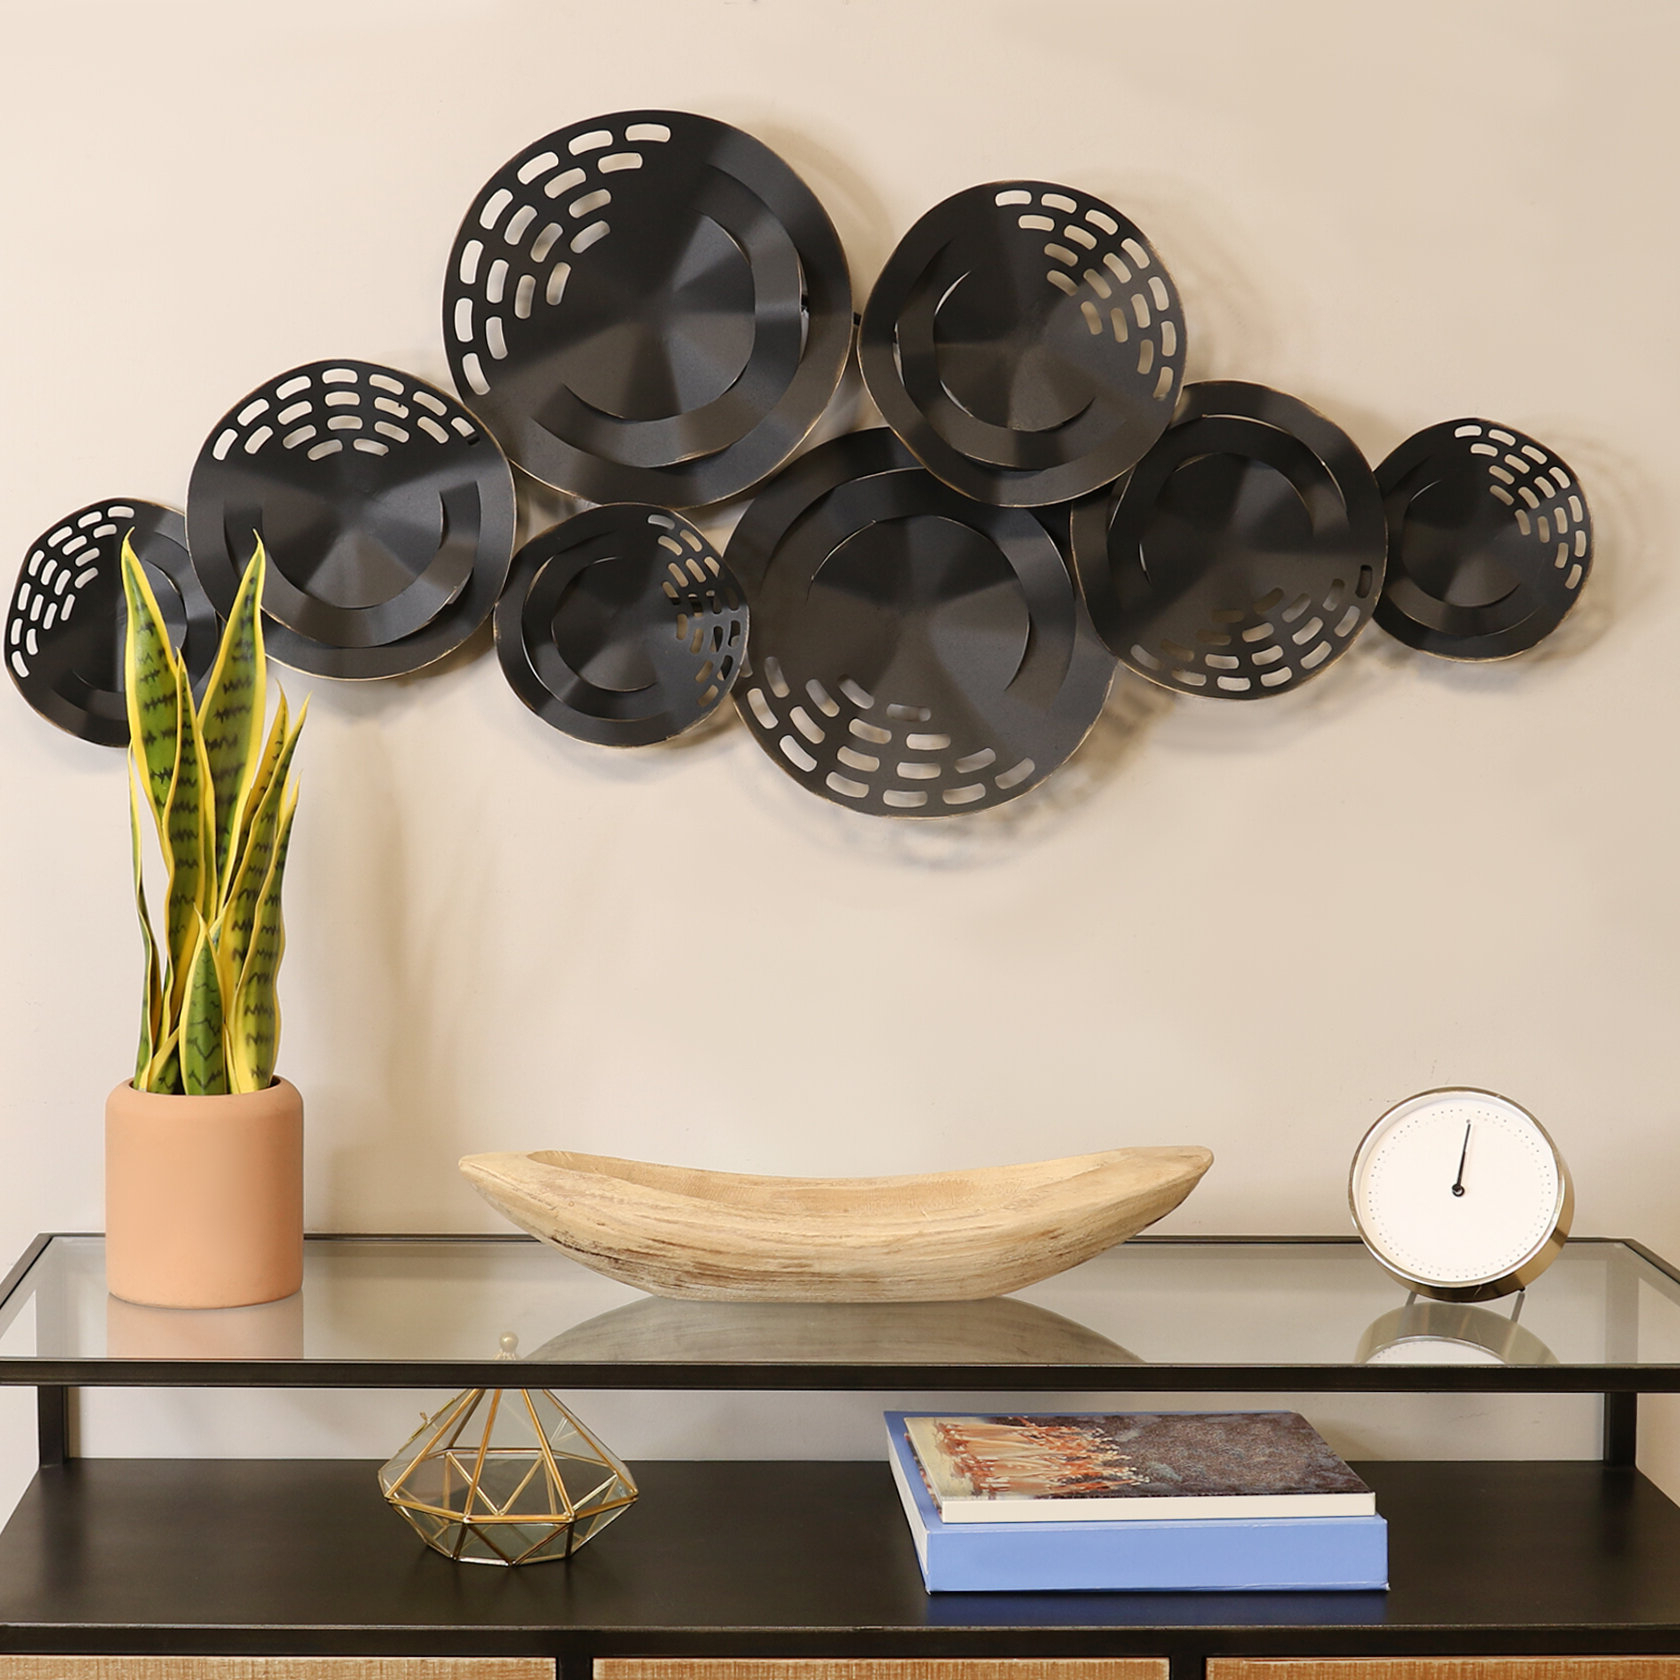 Modern Centerpiece Wall Décor With Recent Wall Décor By Brayden Studio (View 2 of 20)